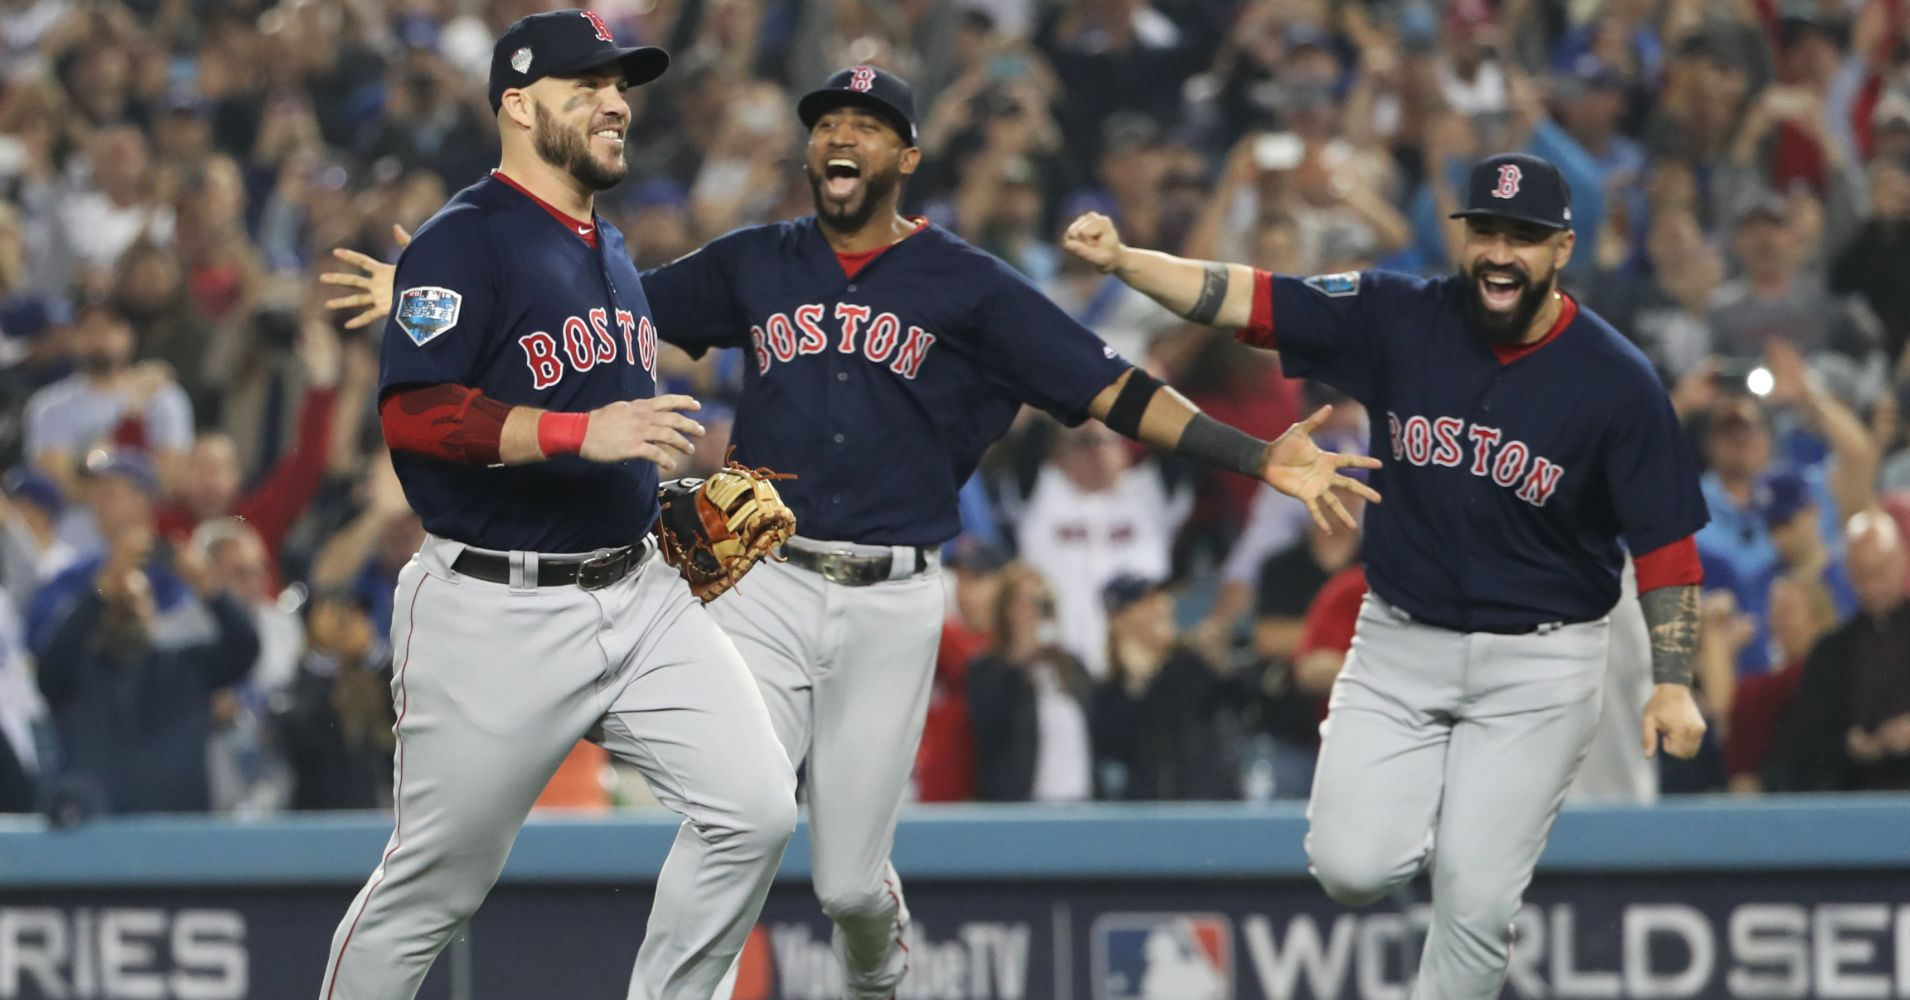 ad6fcd202 Management Lessons From Three Red Sox Managers - Priority Matrix ...